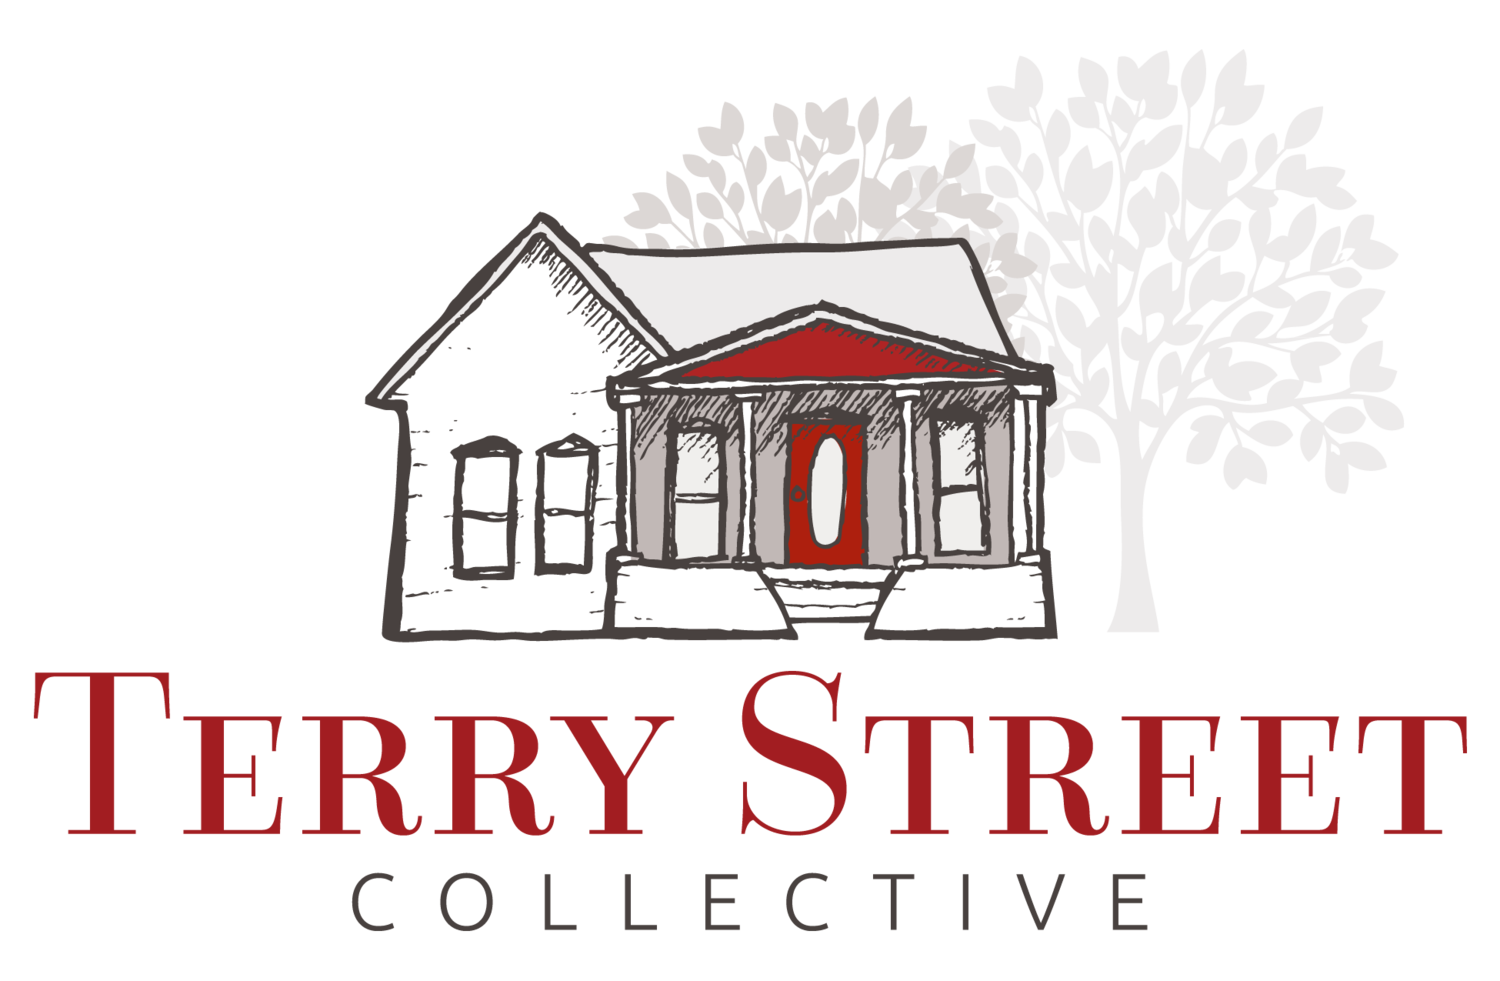 Terry Street Collective